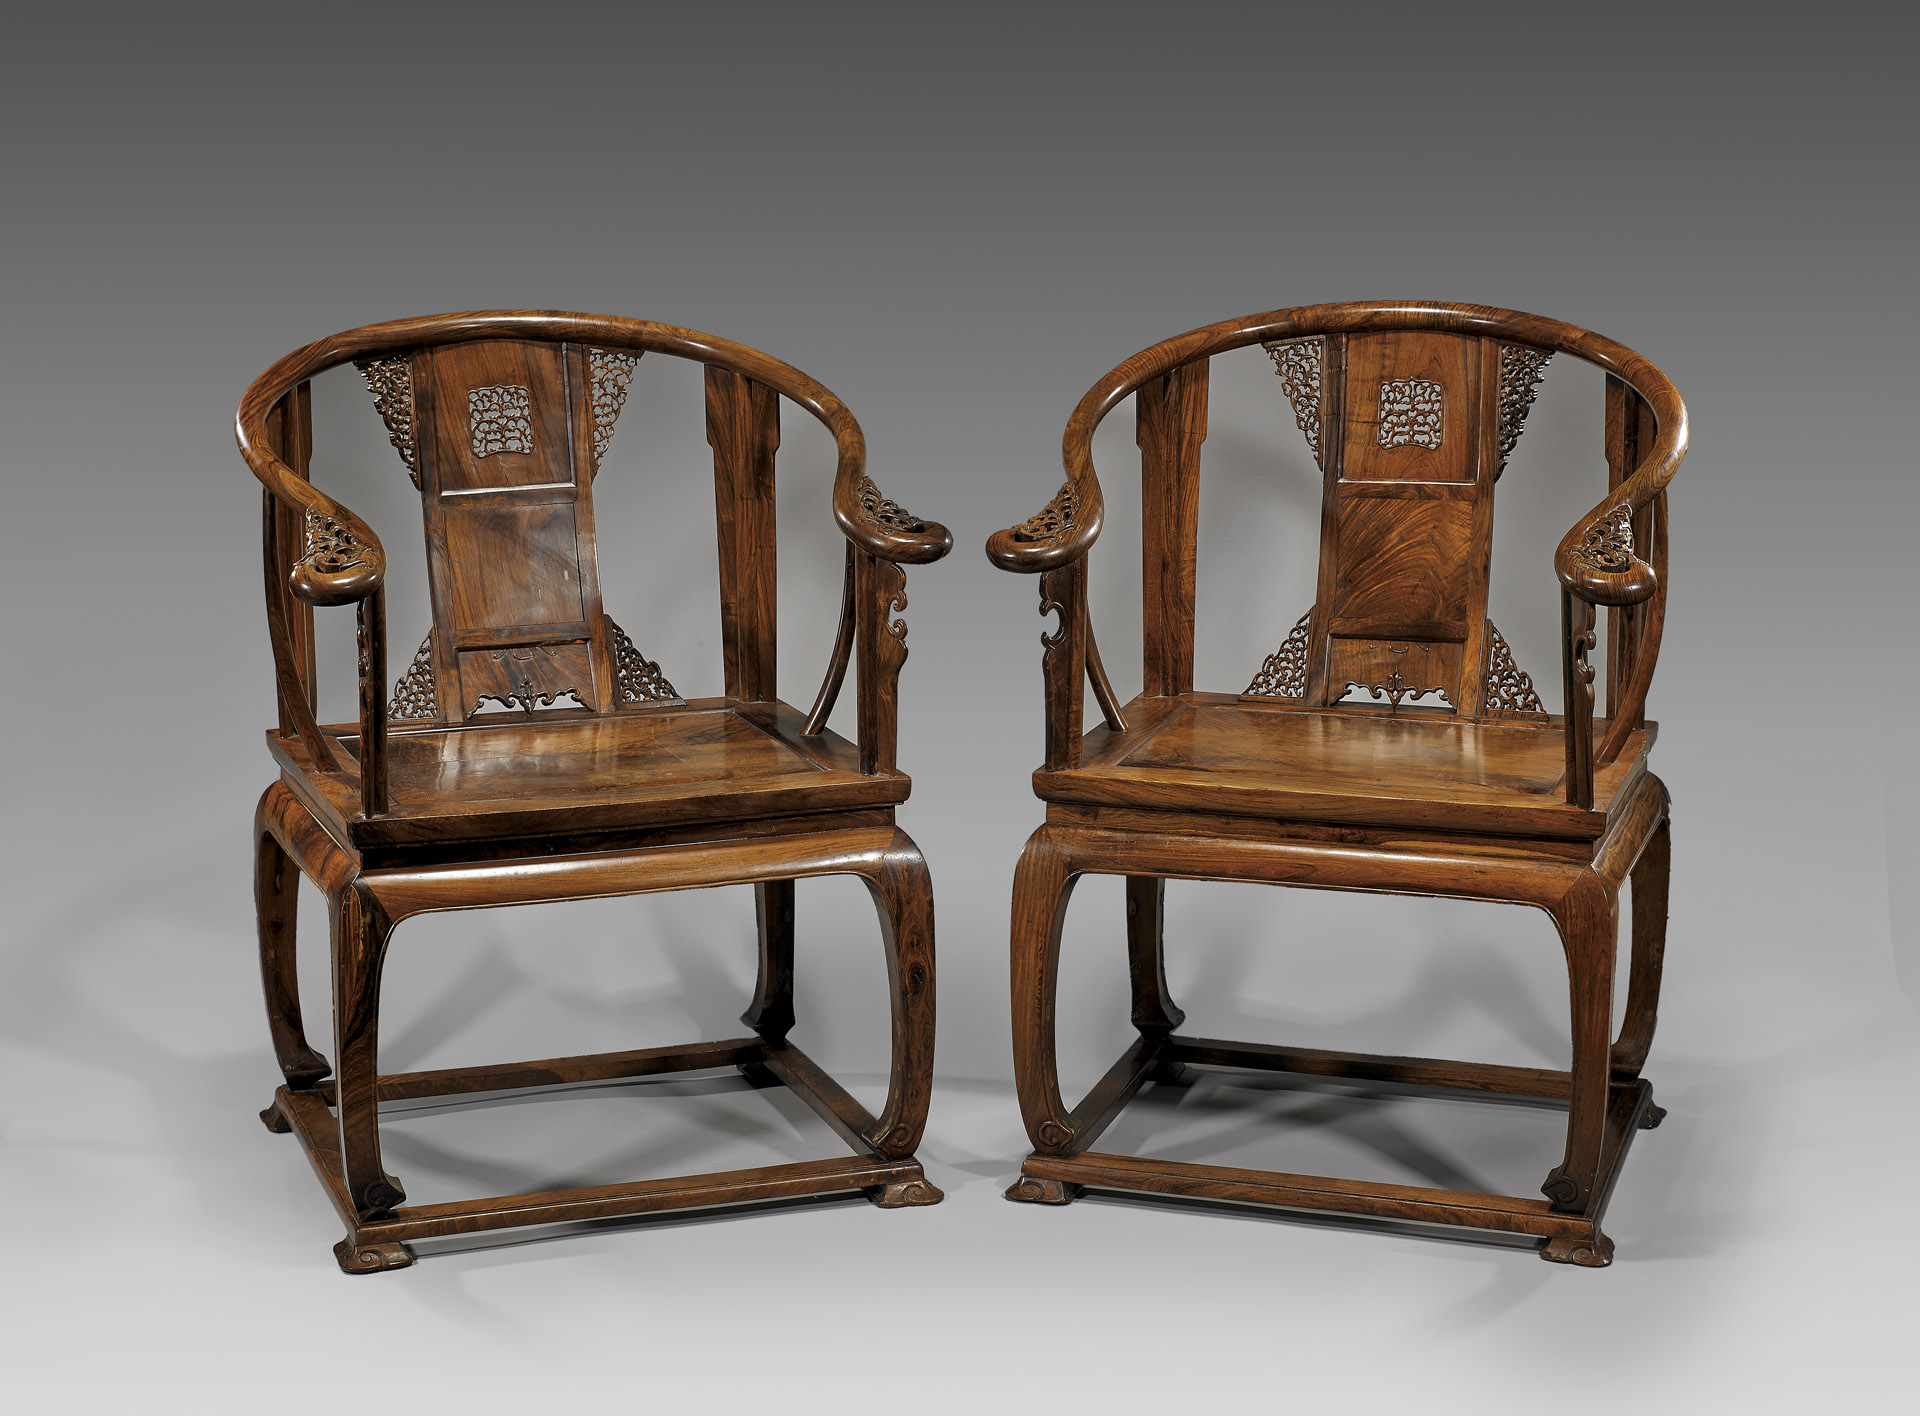 Charmant This Antique Pair Of Chinese Carved Huanghuali Wood Armchairs With  Intricately Carved Backsplat And Curvilinear Arms